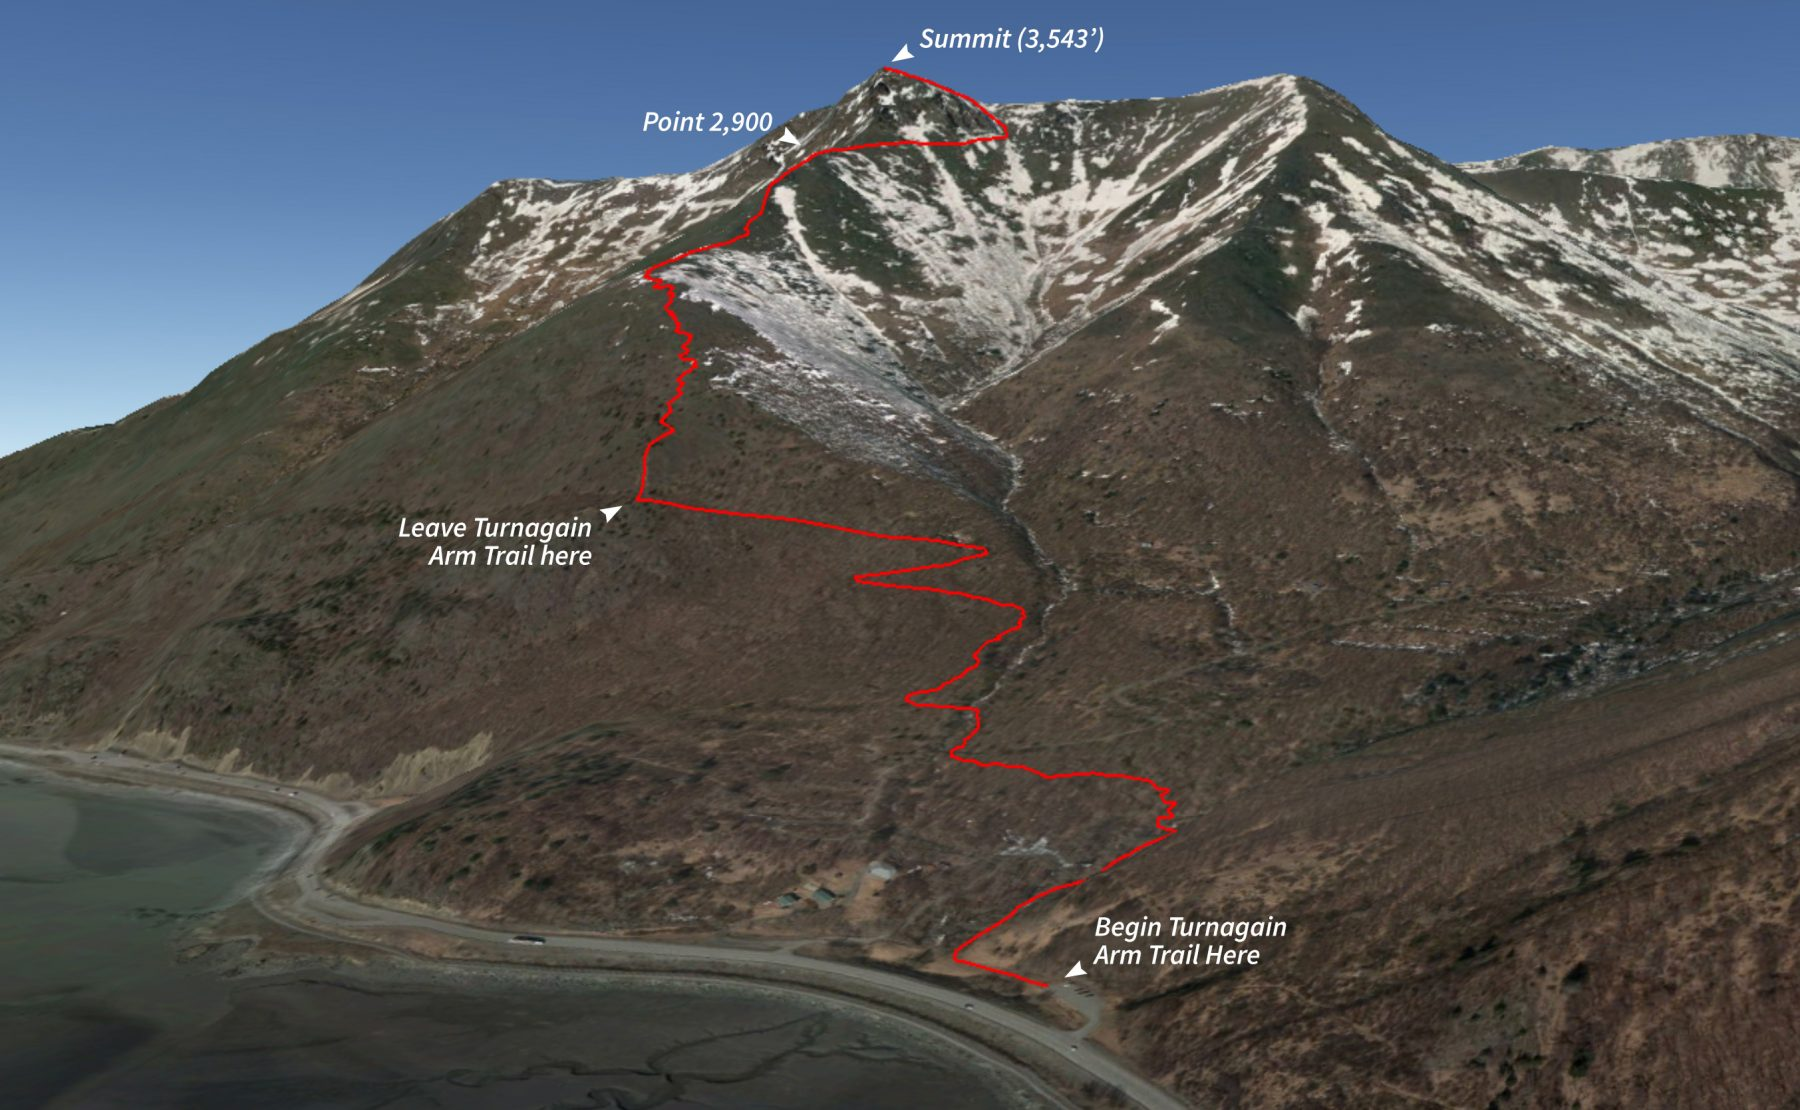 Route for hiking Rainbow Peak